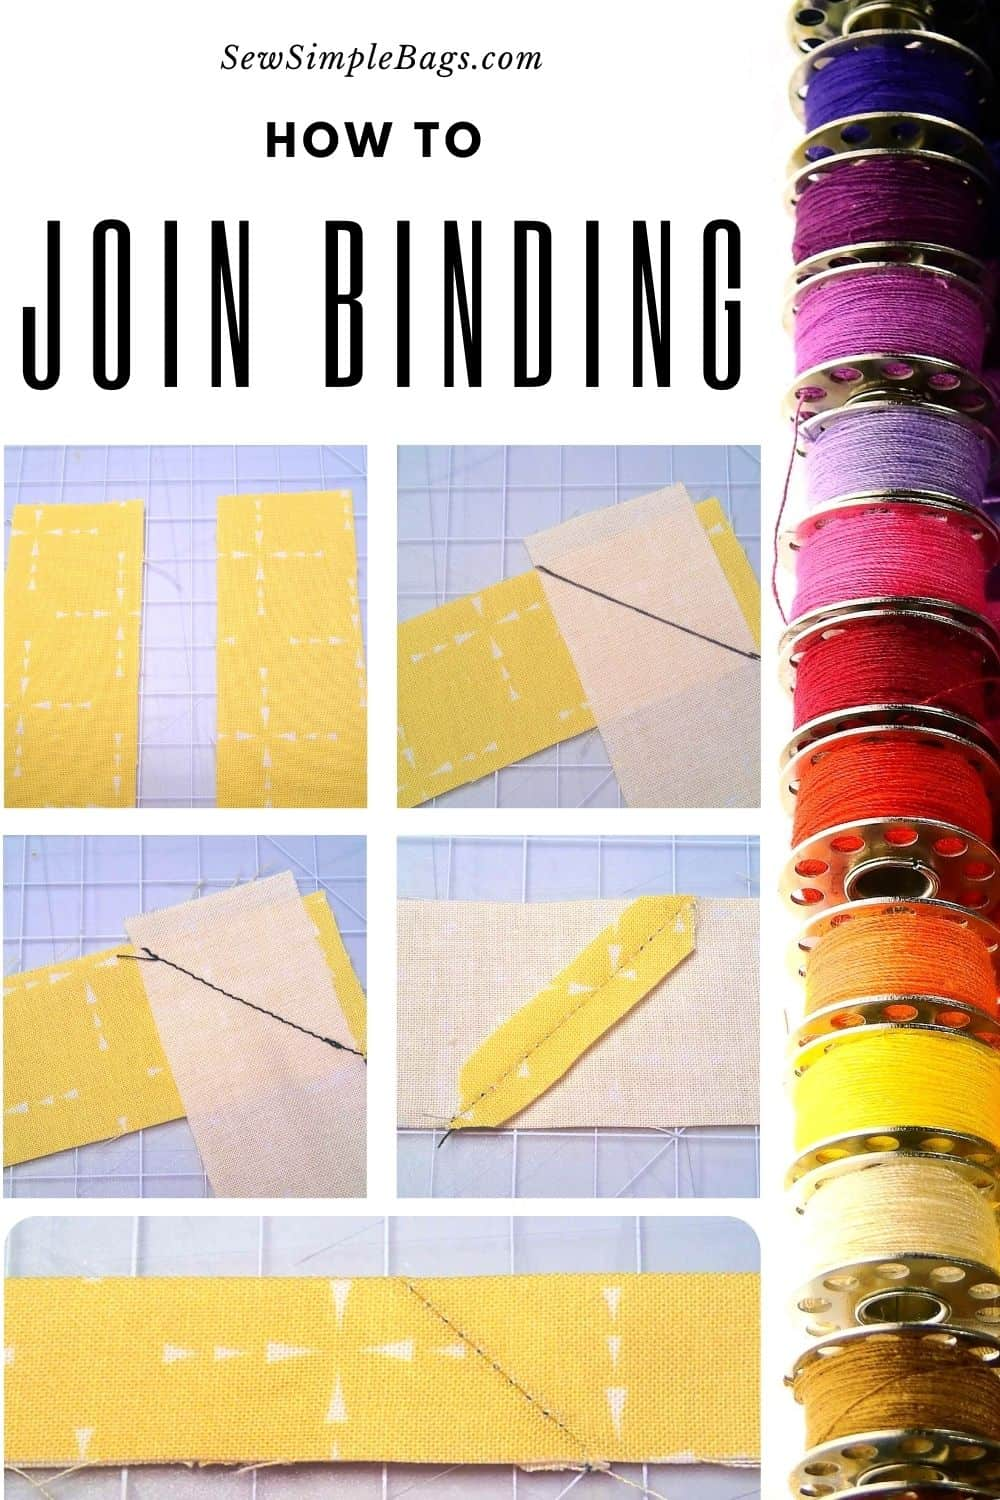 Step by step photo instructions for how to join binding with a diagonal seam to reduce bulk